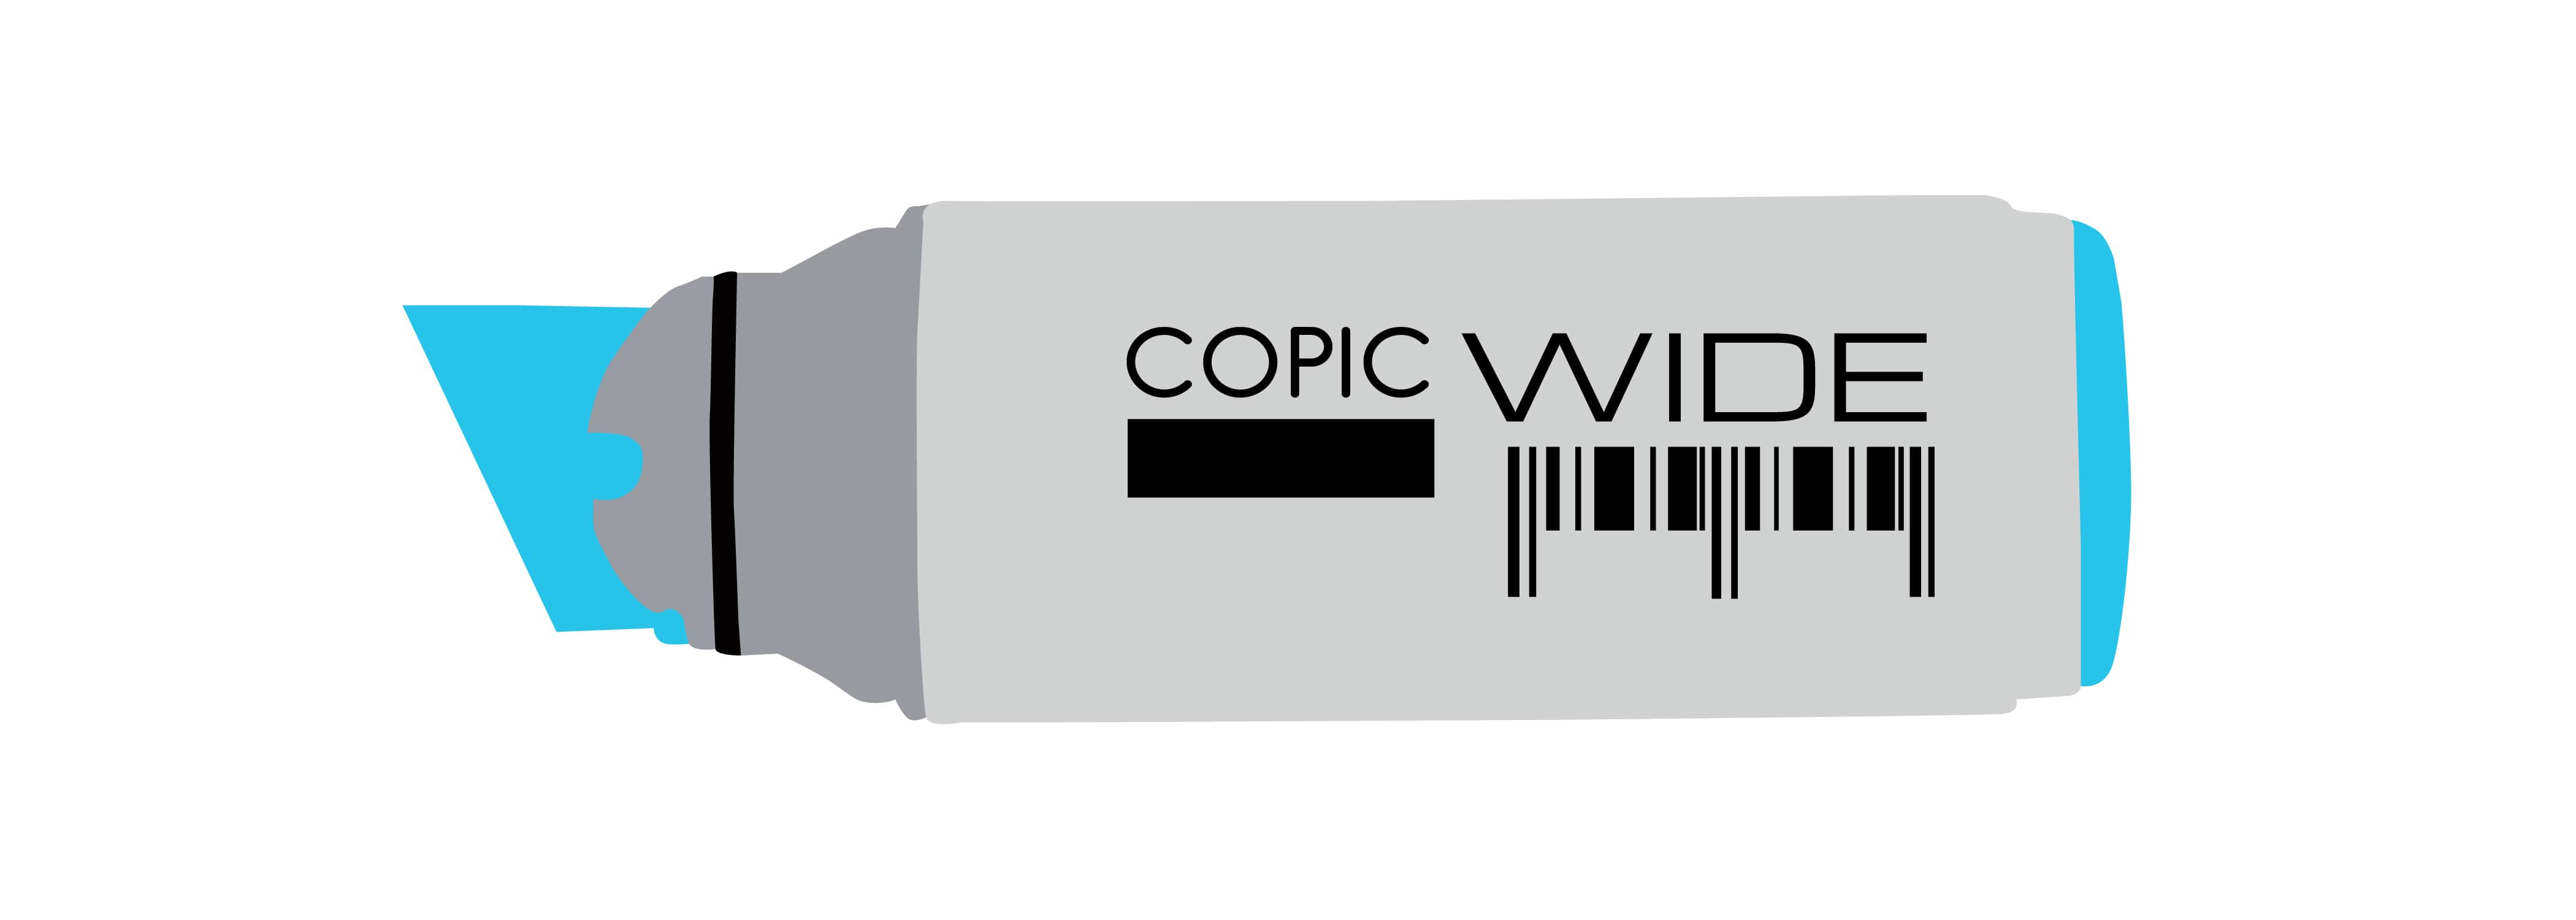 Vector illustration of Copic Wide Marker with wide chisel tip at one end